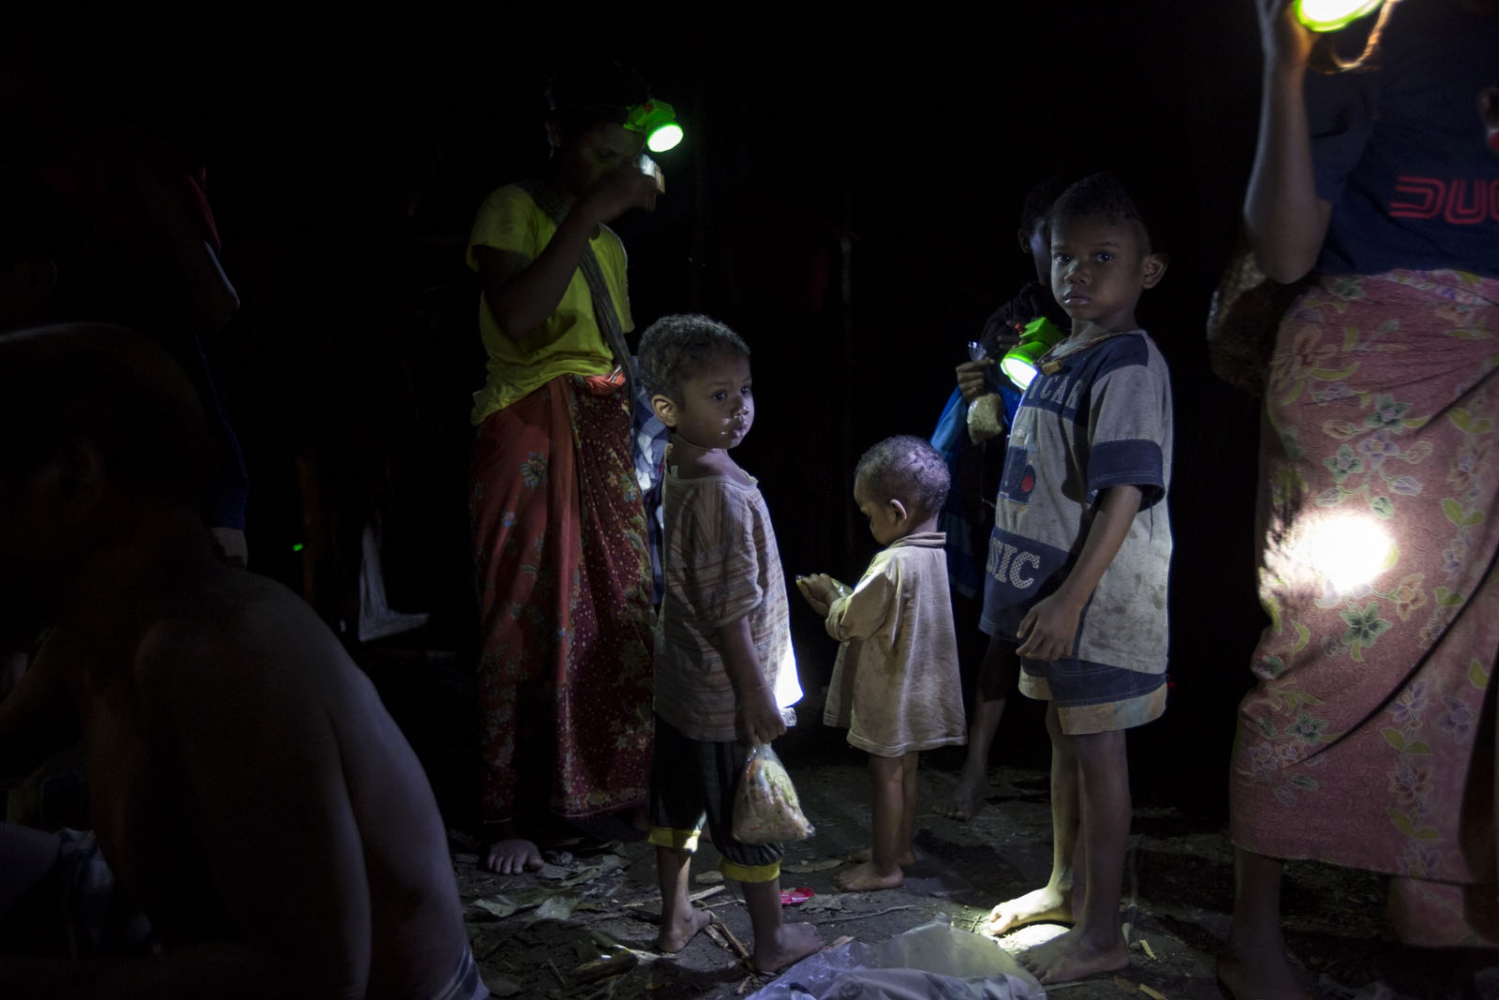 A Maniq family return back to their settlement after a trip to a nearby village. By the time they got home it was already dark having to walk through the forest with only headtorches. Satun - September 2016